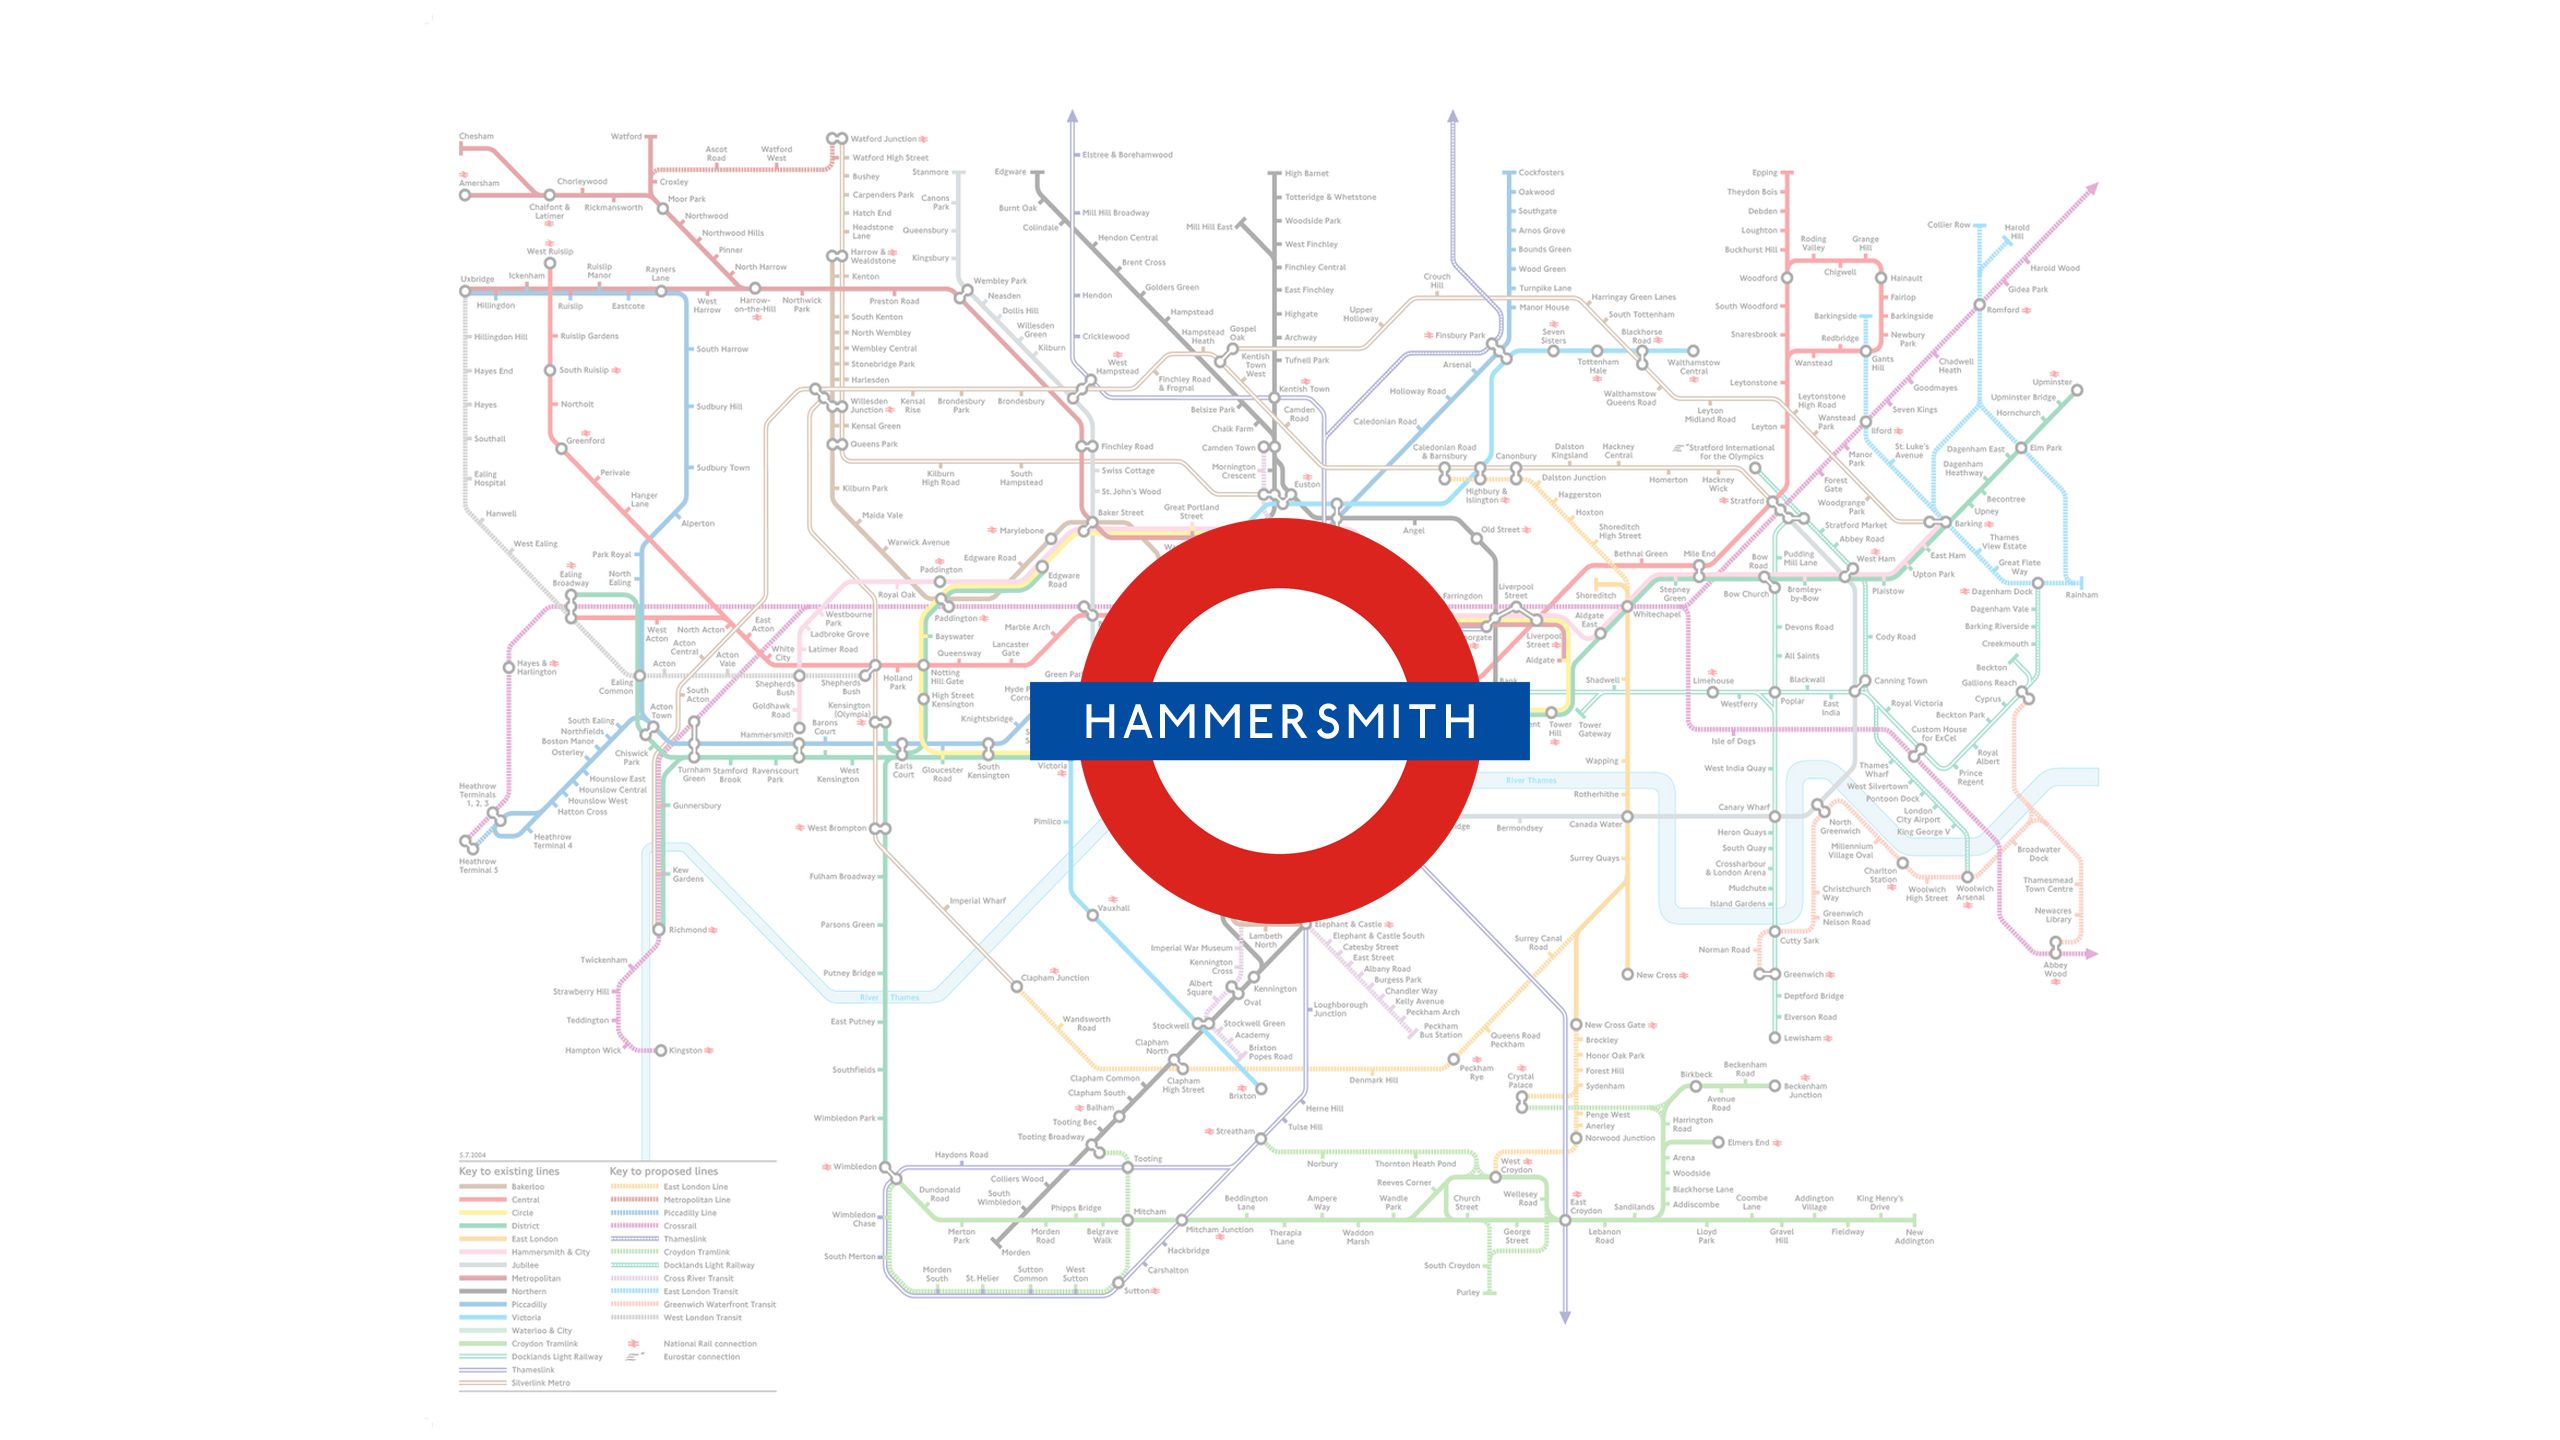 Hammersmith (Map)